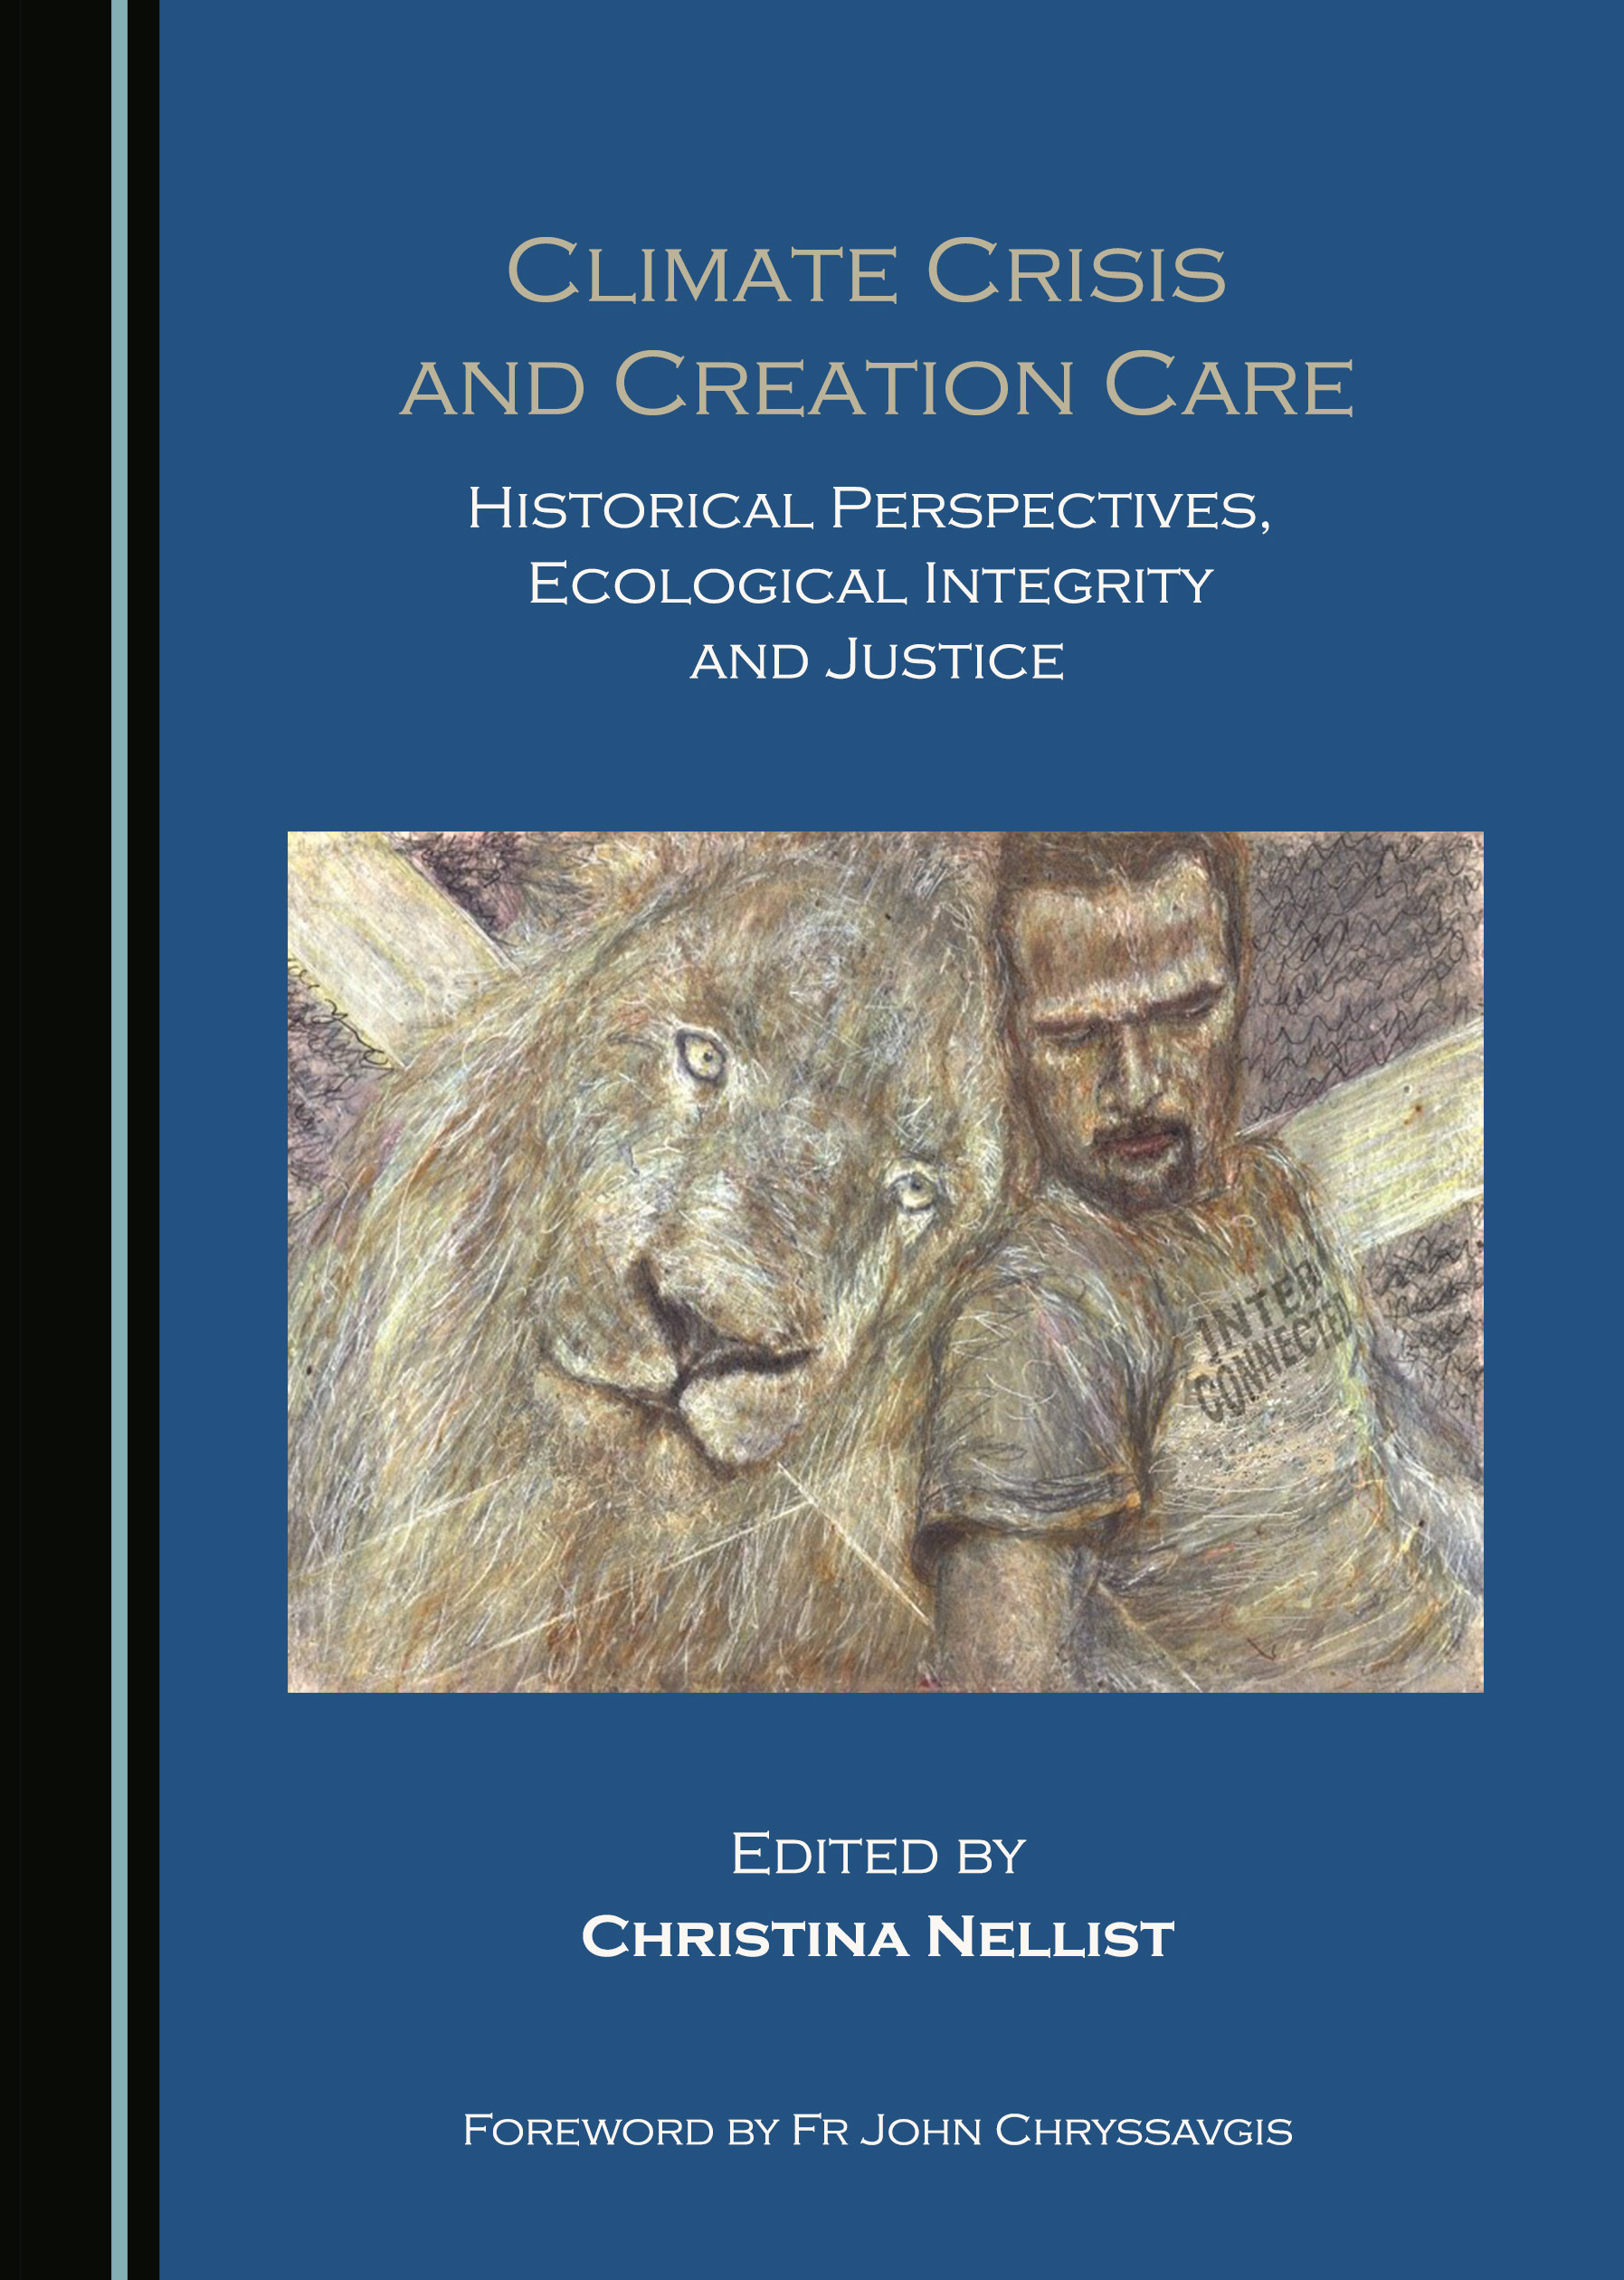 Climate Crisis and Creation Care: Historical Perspectives, Ecological Integrity and Justice